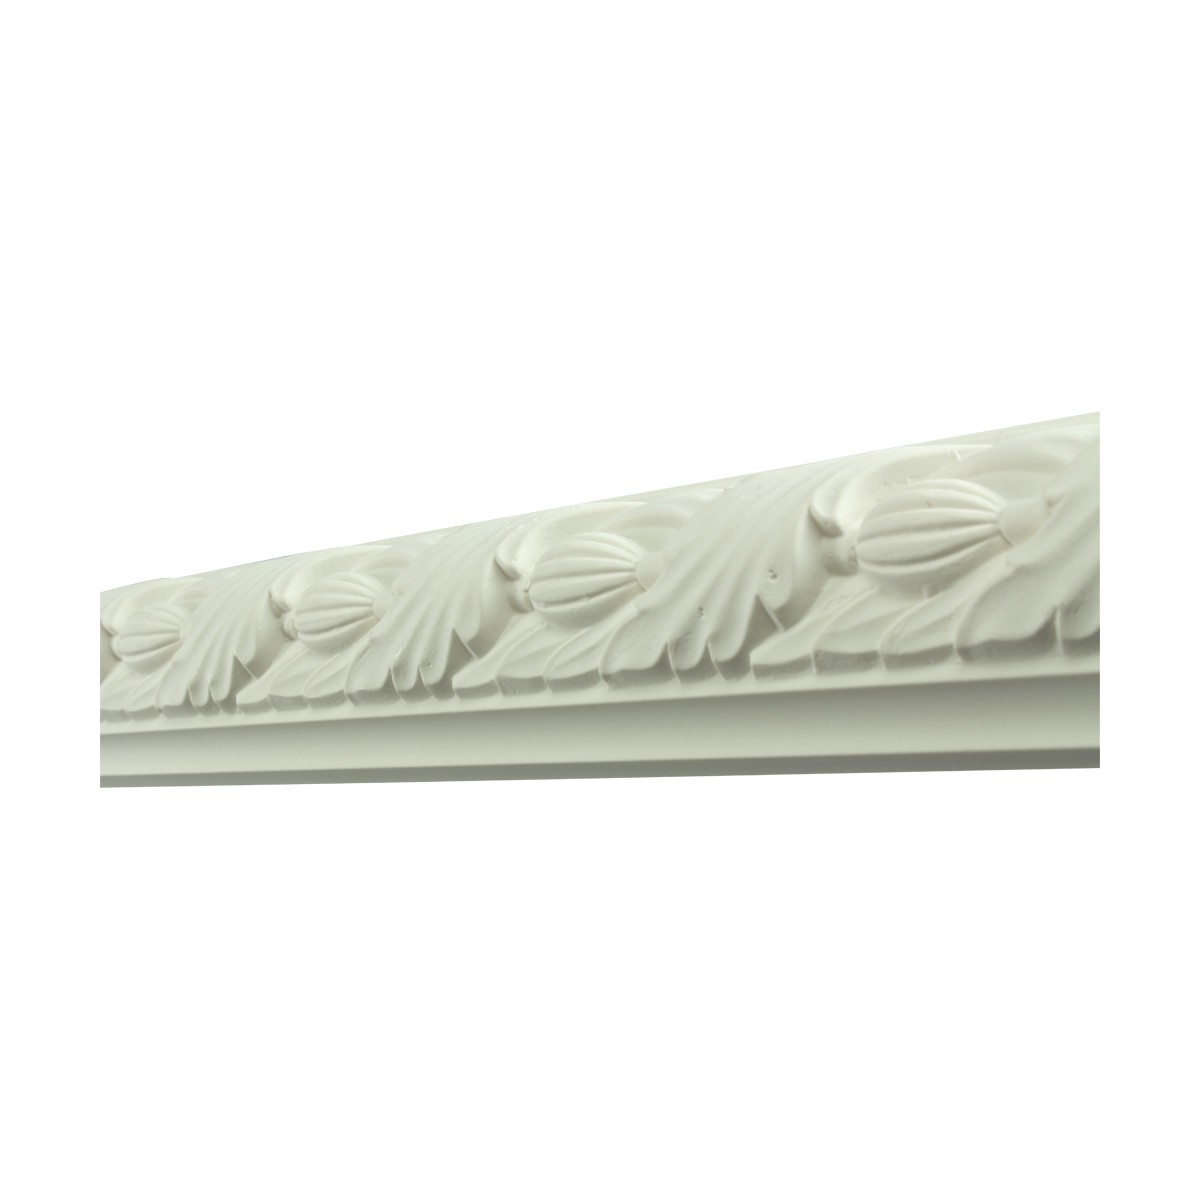 Renovators Supply Crown Molding White Urethane Tennyson Ornate Design 8 Pieces Totaling 752 Length White PrePrimed Urethane Crown Cornice Molding Cornice Crown Home Depot Ekena Millwork Molding Wall Ceiling Corner Cornice Crown Cove Molding